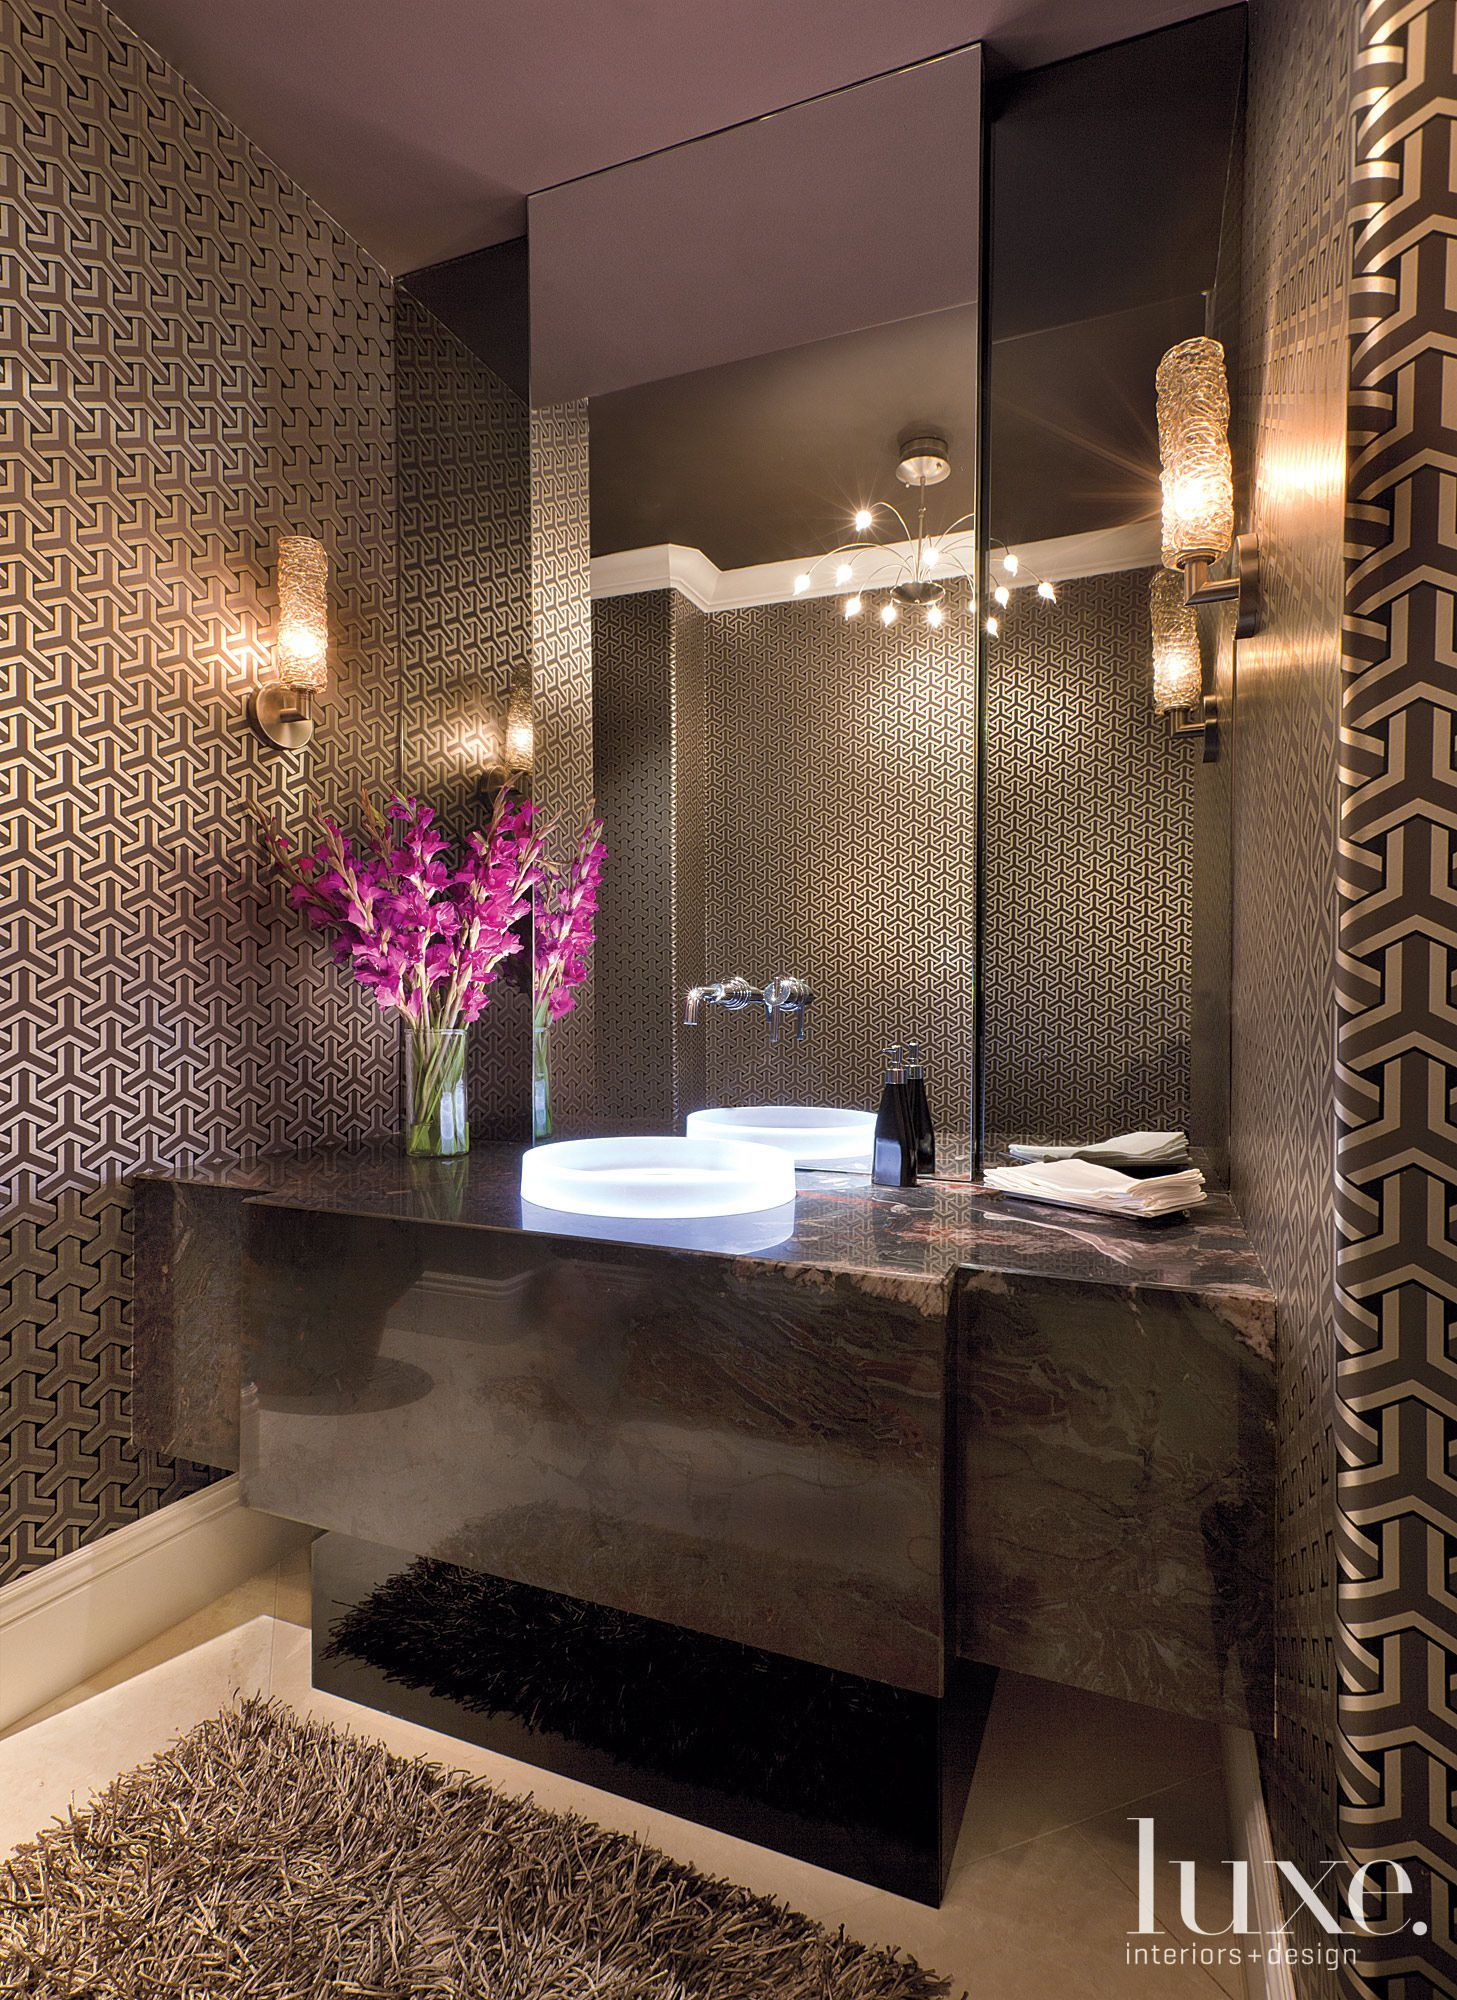 A collection of our 10 most popular LUXE bathrooms pinned ...